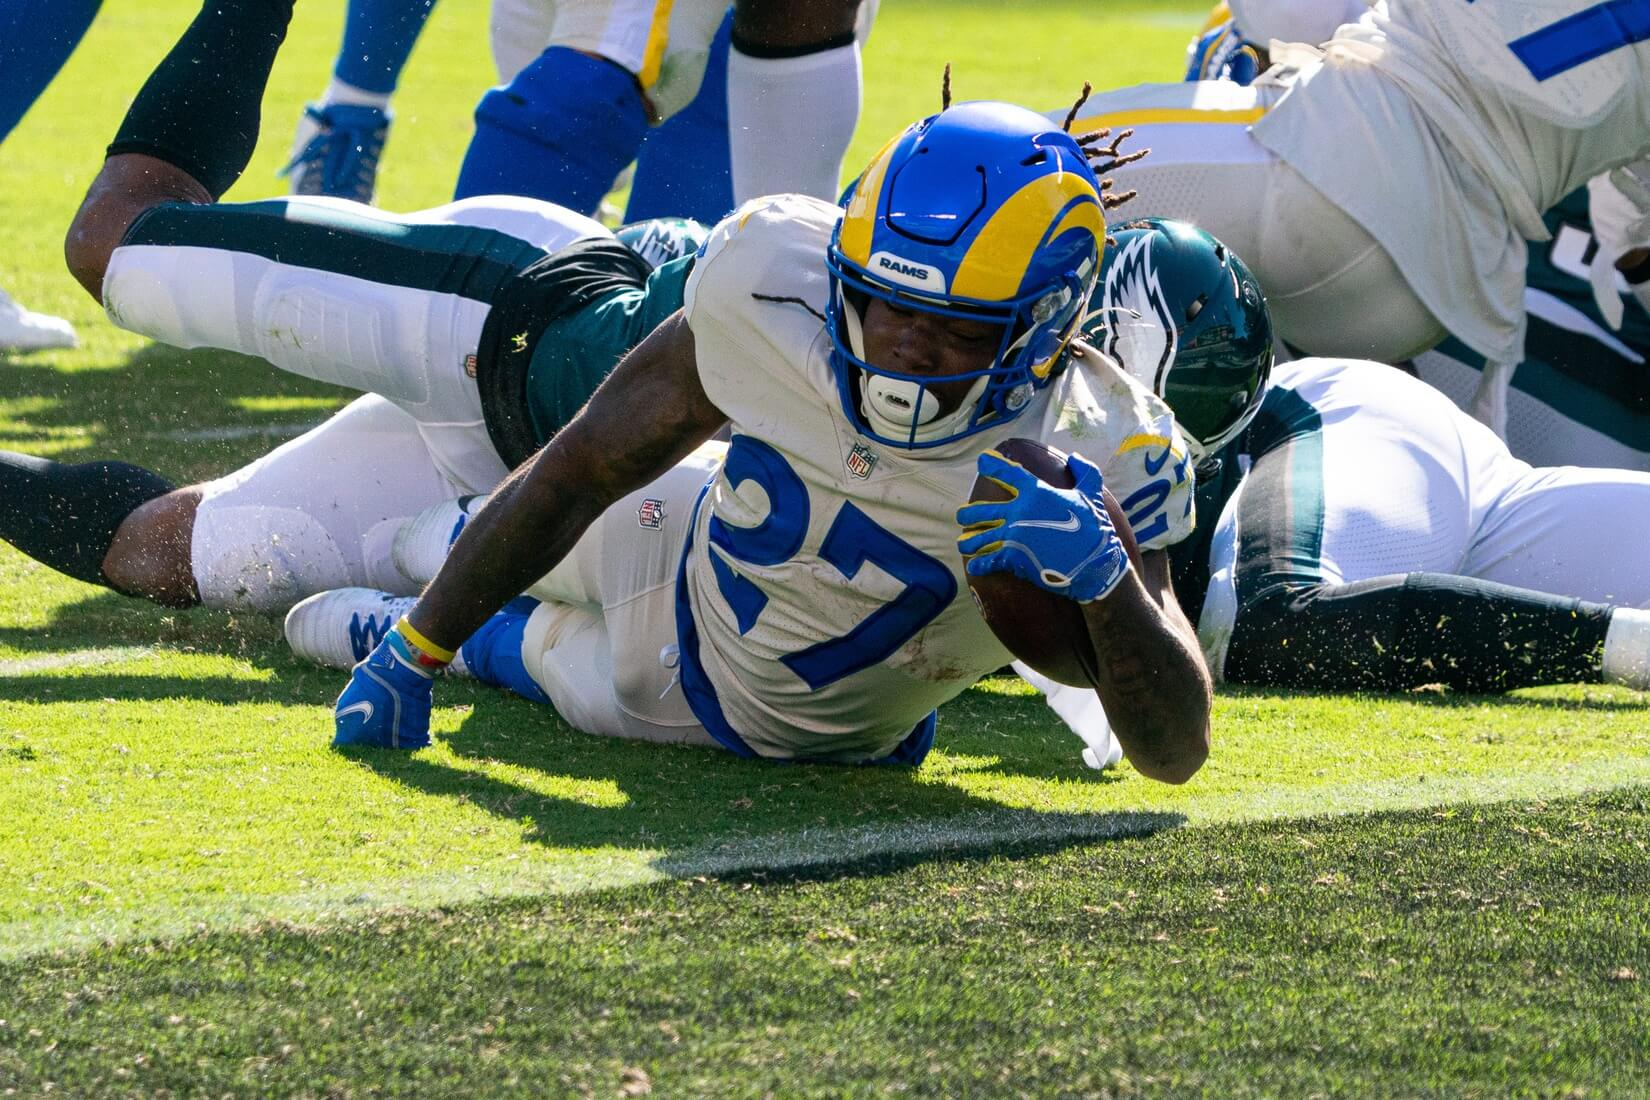 Tyler's Thoughts - Week 7 MNF Gamescript Preview